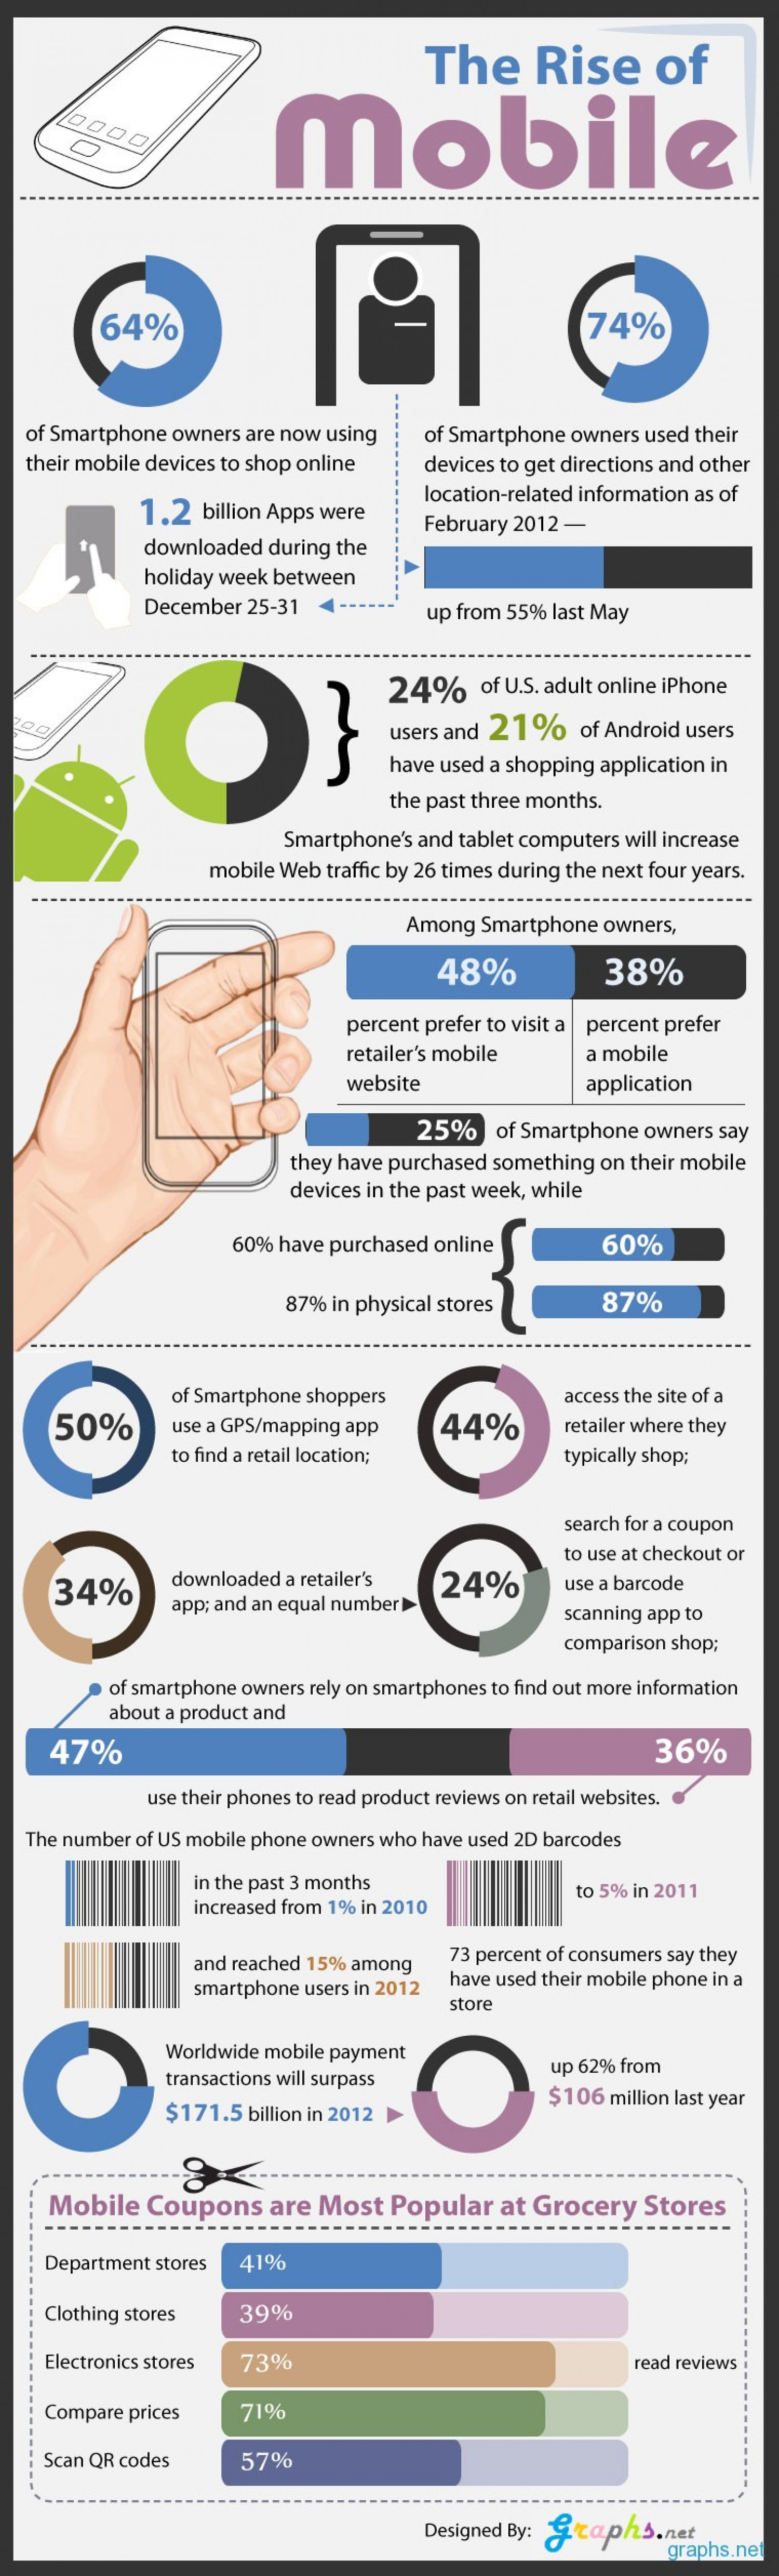 The Rise of Mobile (Infographic) Infographic